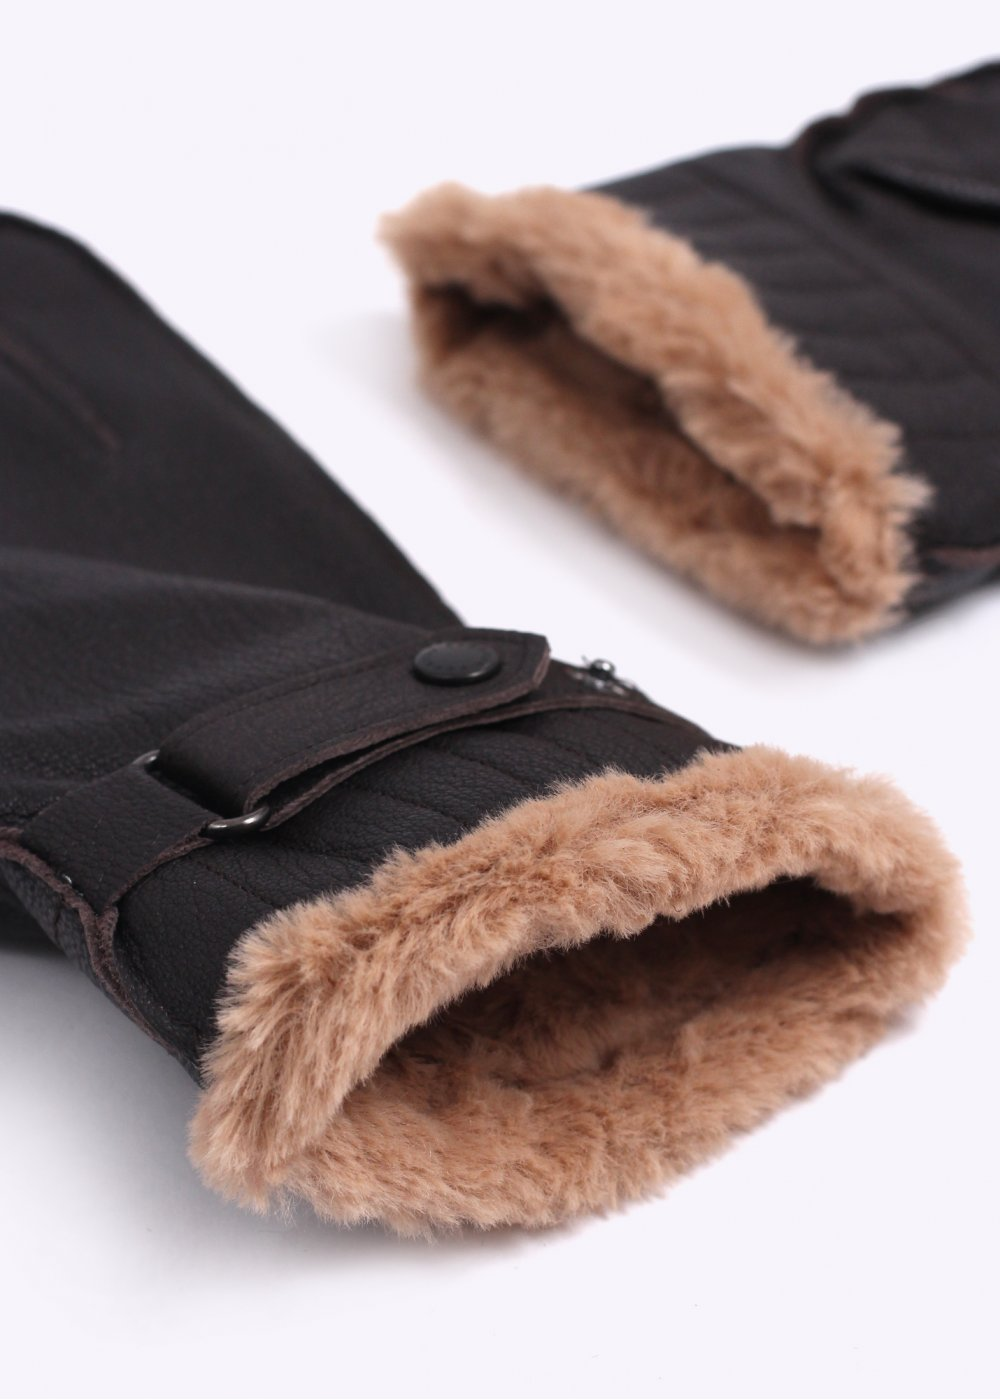 Barbour black leather utility gloves - Barbour Leather Utility Gloves Brown